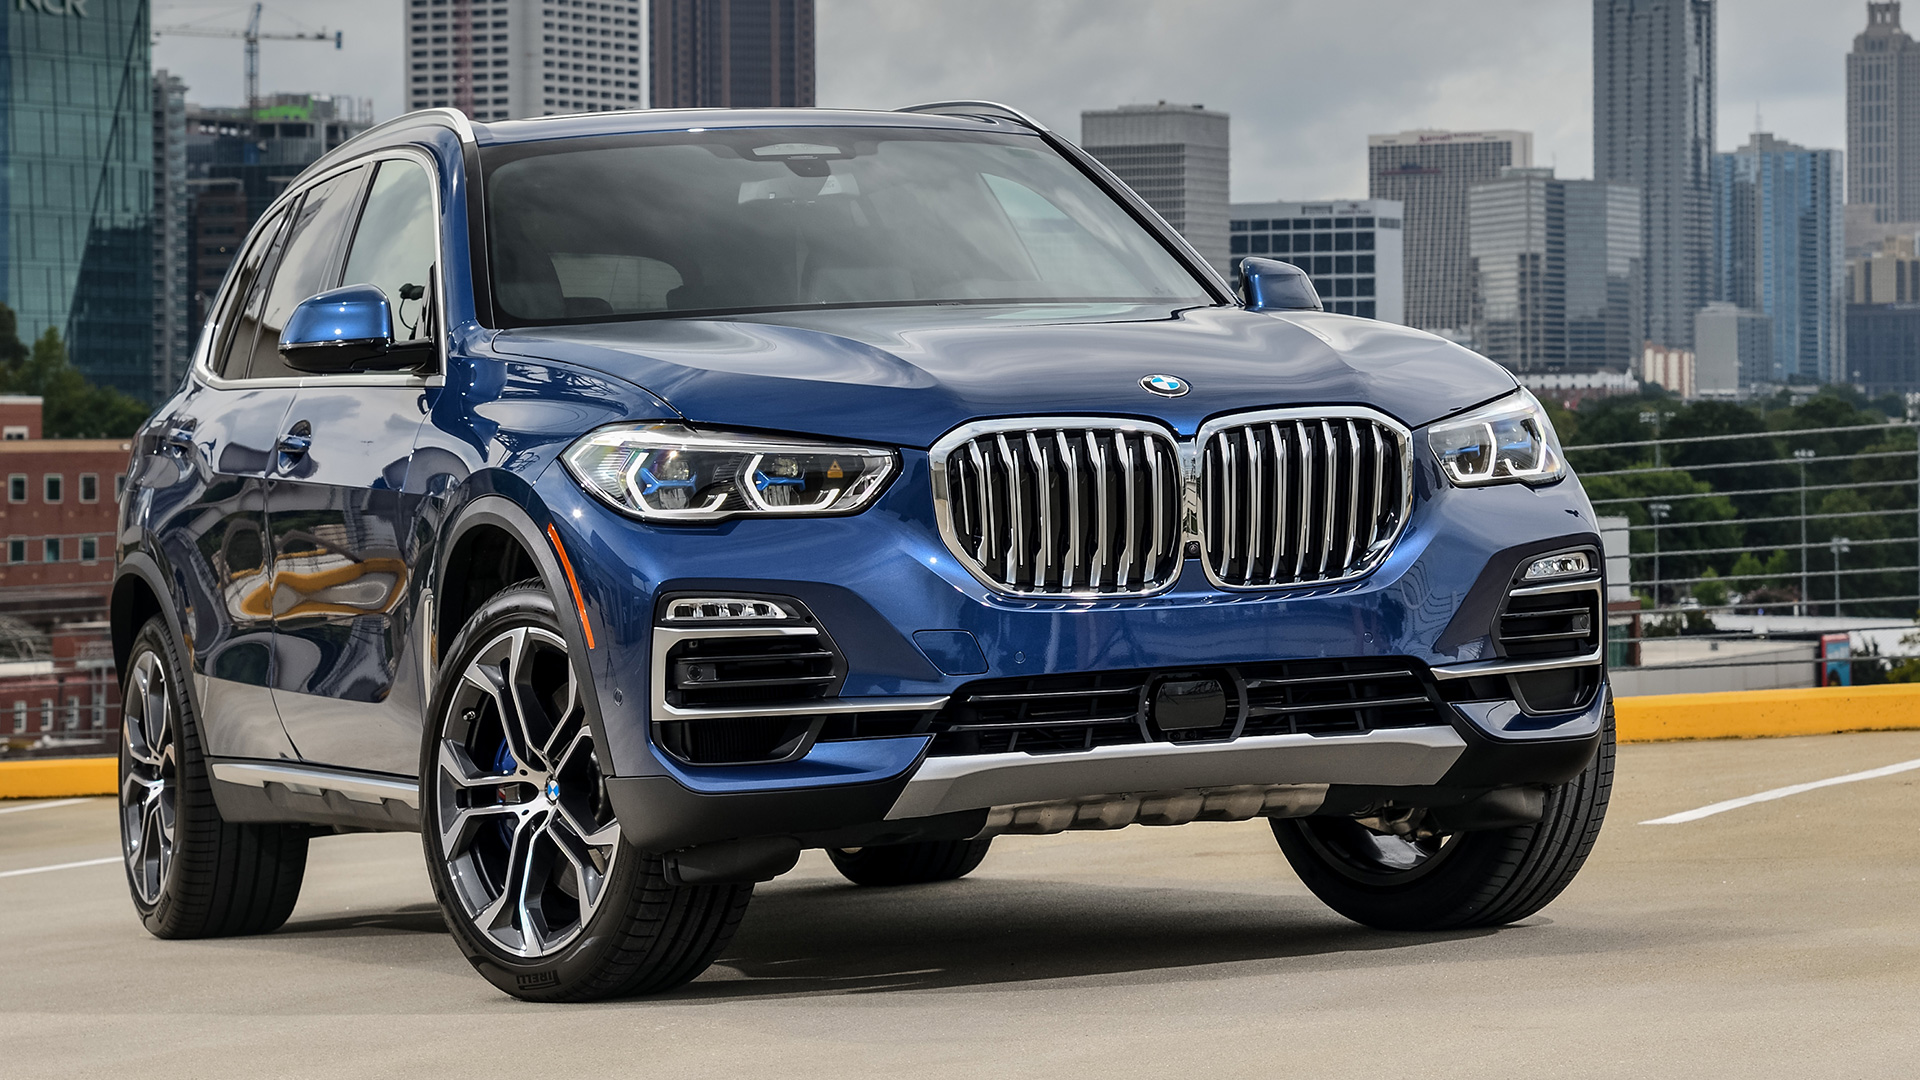 Bmw Suv 2020 Price In India